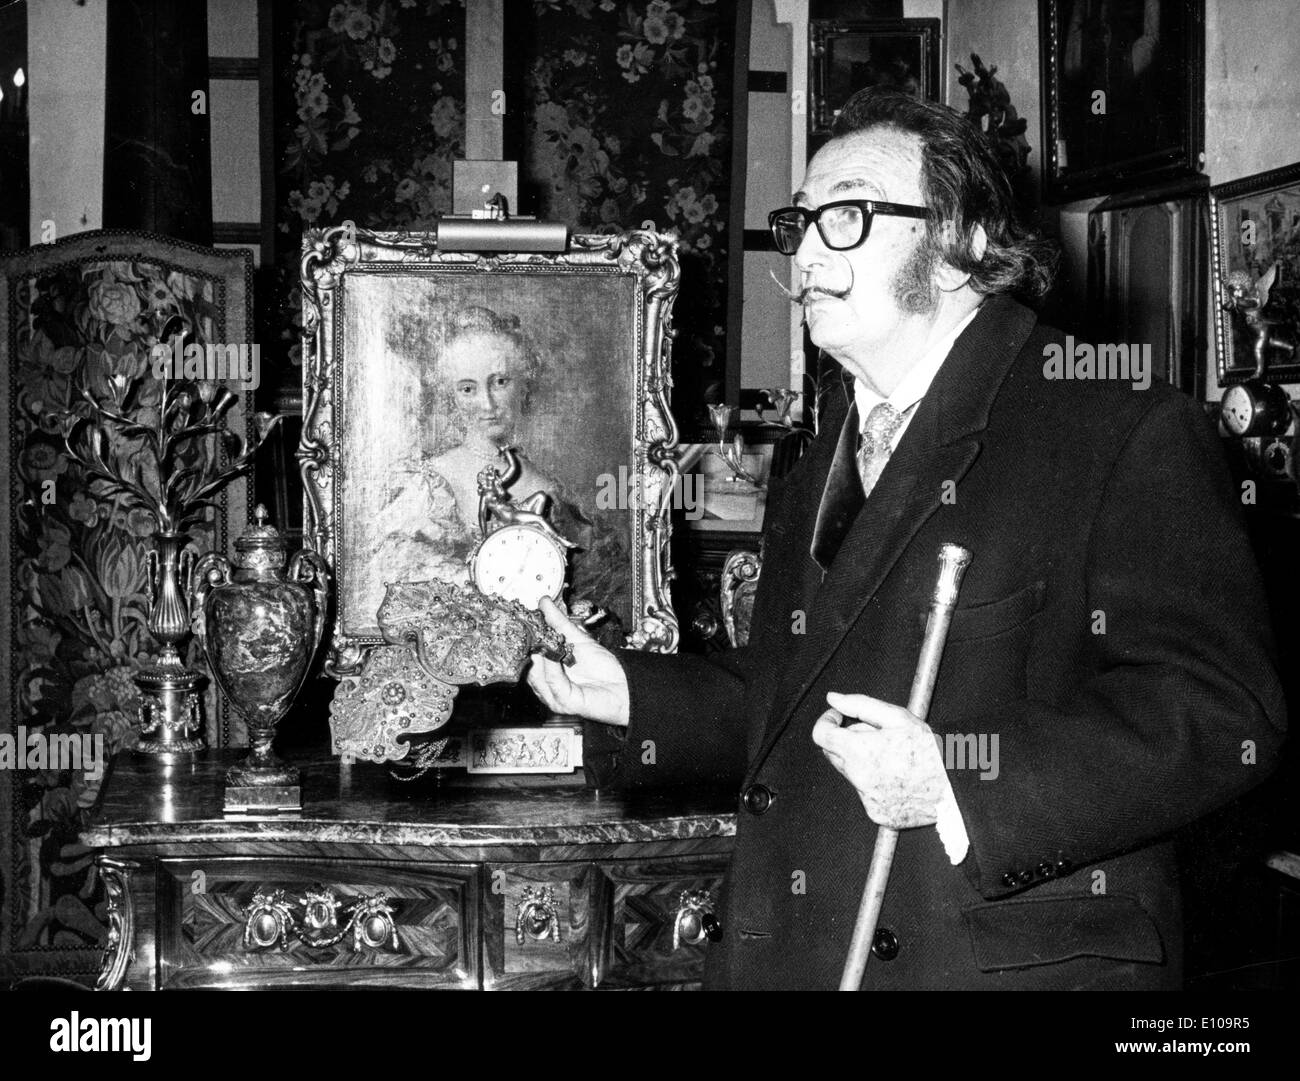 Artist Salvador Dali at antique shop - Stock Image